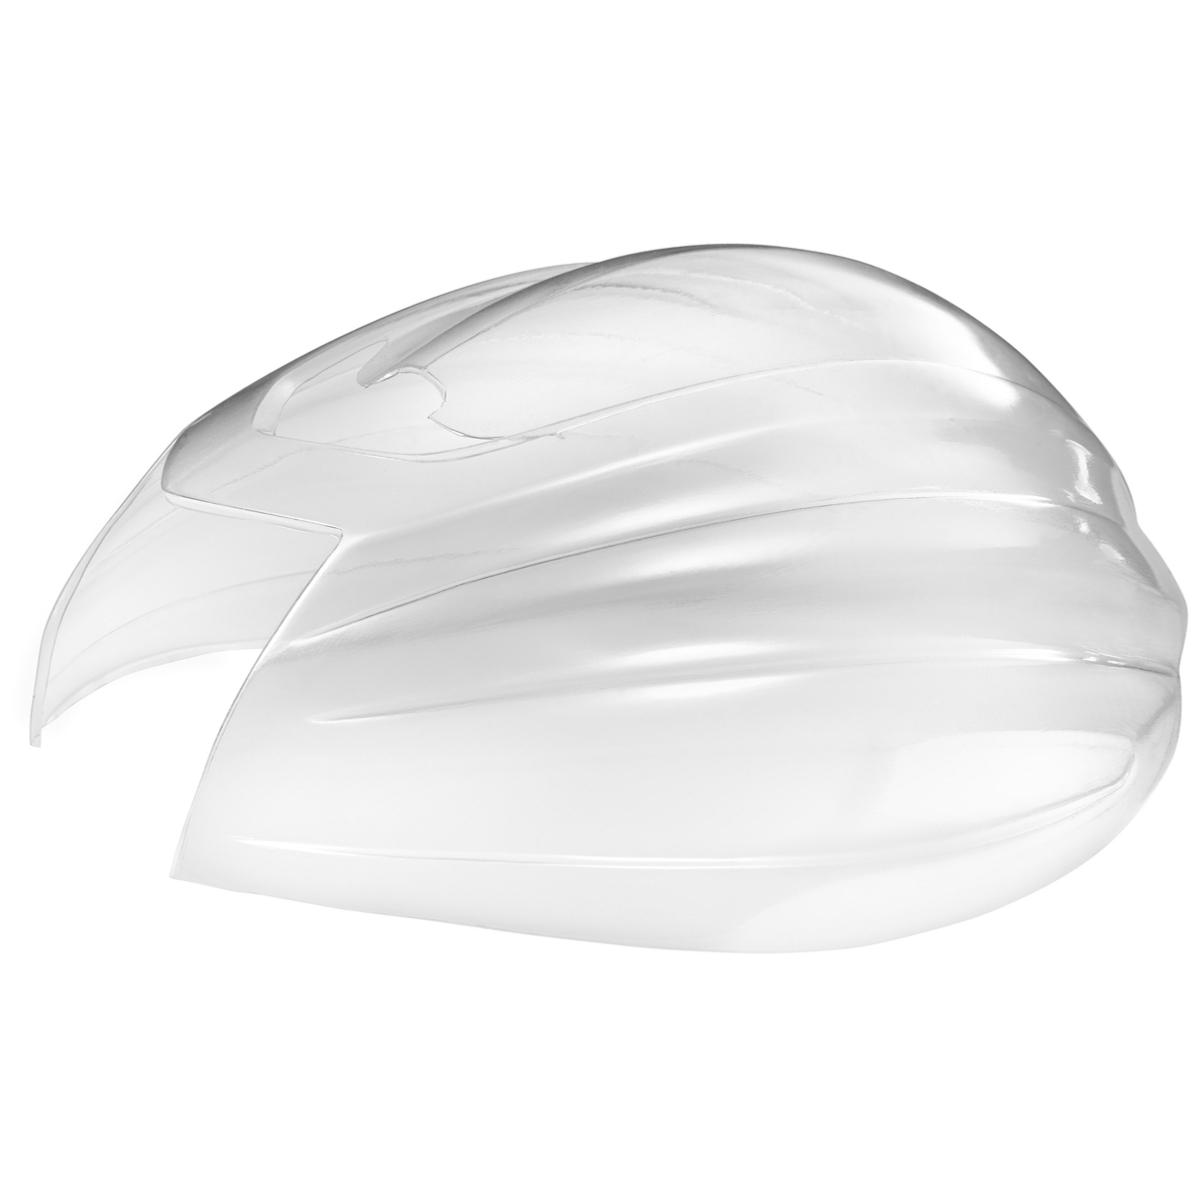 Coque LAZER Aeroshell Z1 Transparent